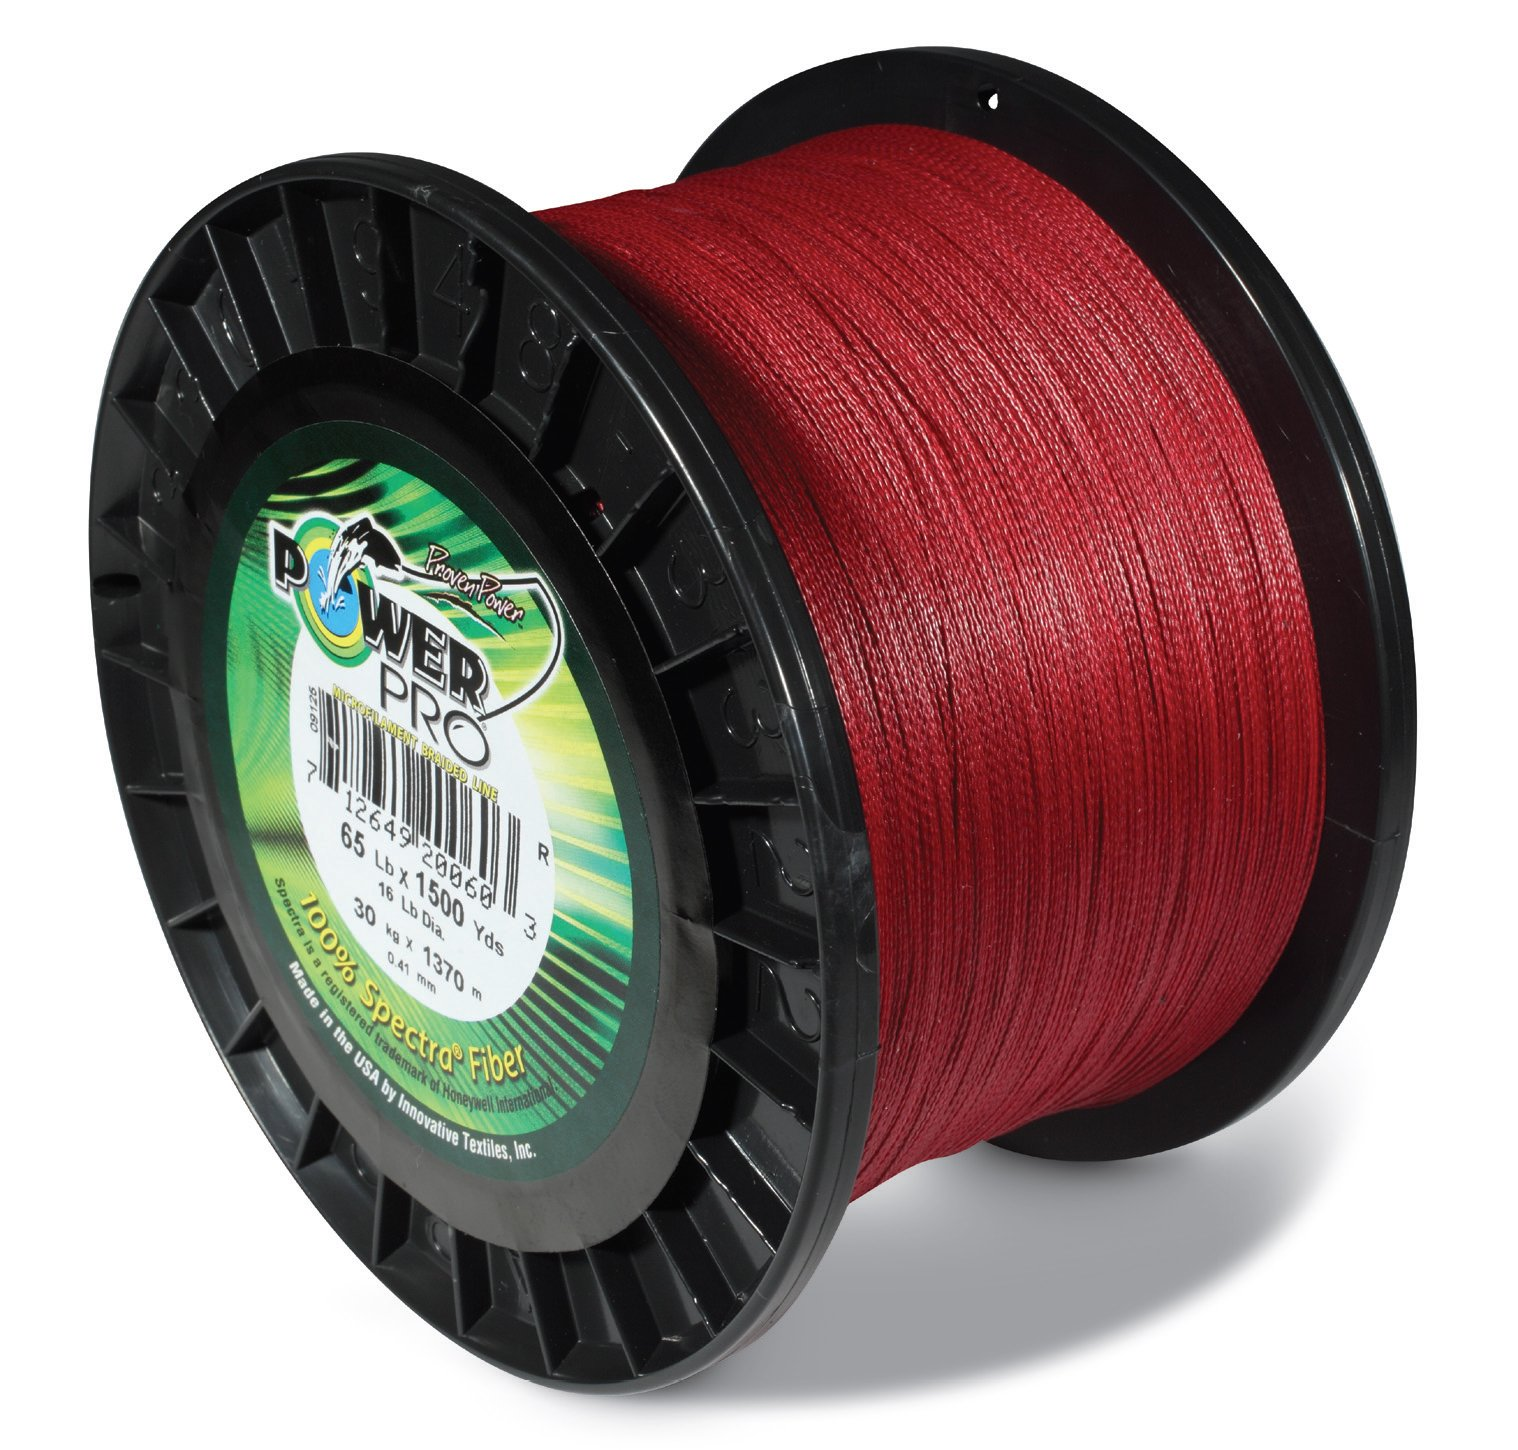 21100080150V Braided Fishing Line - Walmart.com